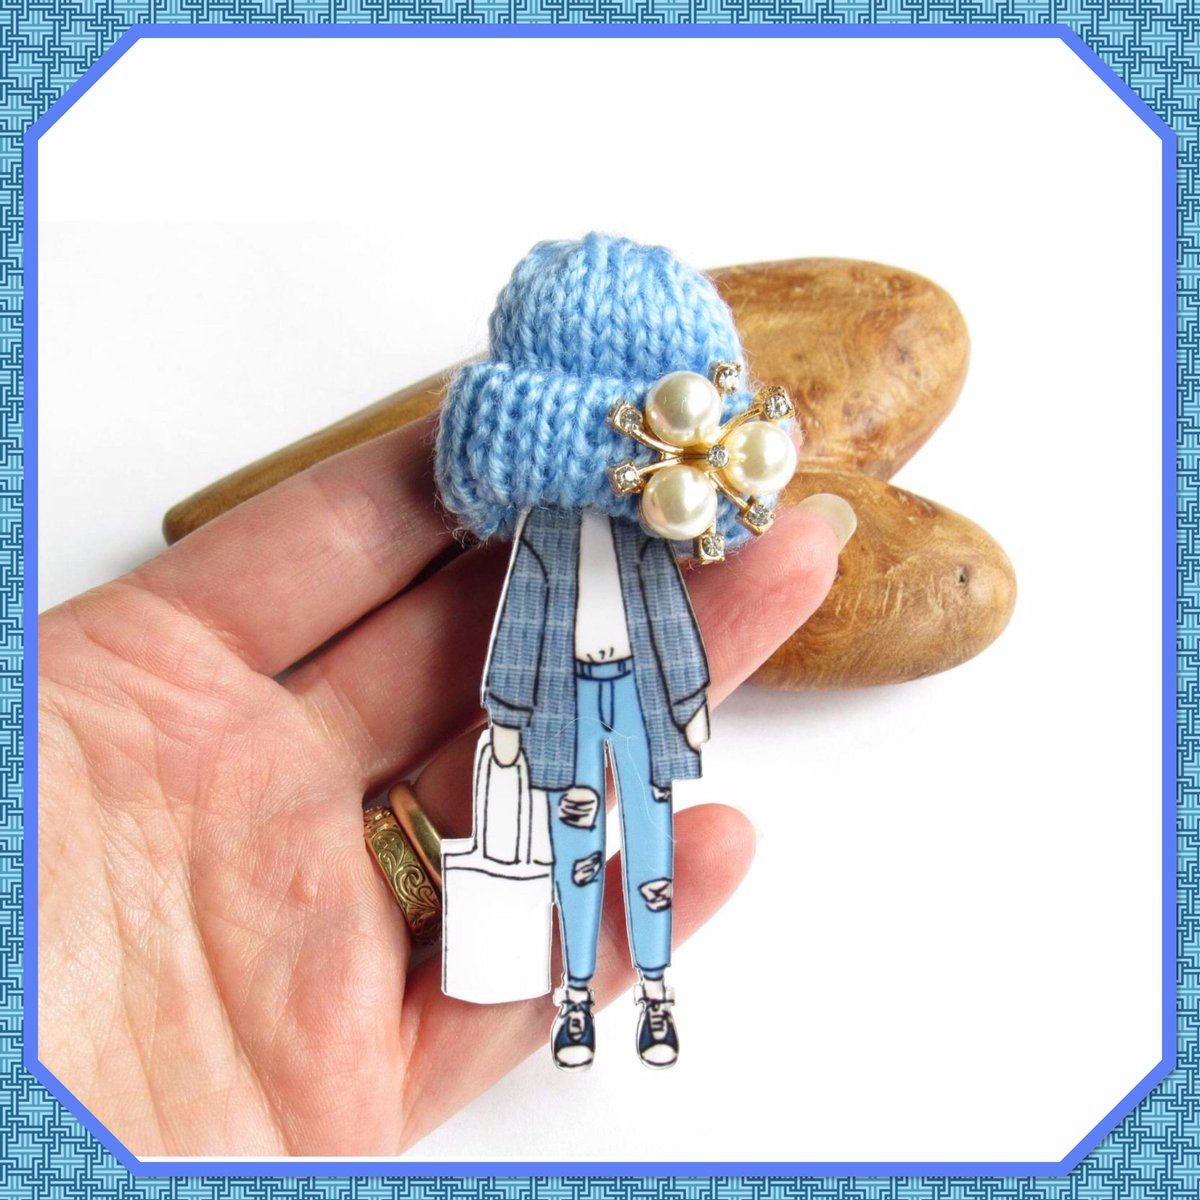 Excited to share this item from my #etsy shop: Brooch | Badge | Acrylic | Woolly Hat | Accessory | Jewellery | Jewelry | Trend | Model  https://etsy.me/3iwuCXx  #ukgiftam #Saturday #SmallBizpic.twitter.com/lJXxCvLbfr